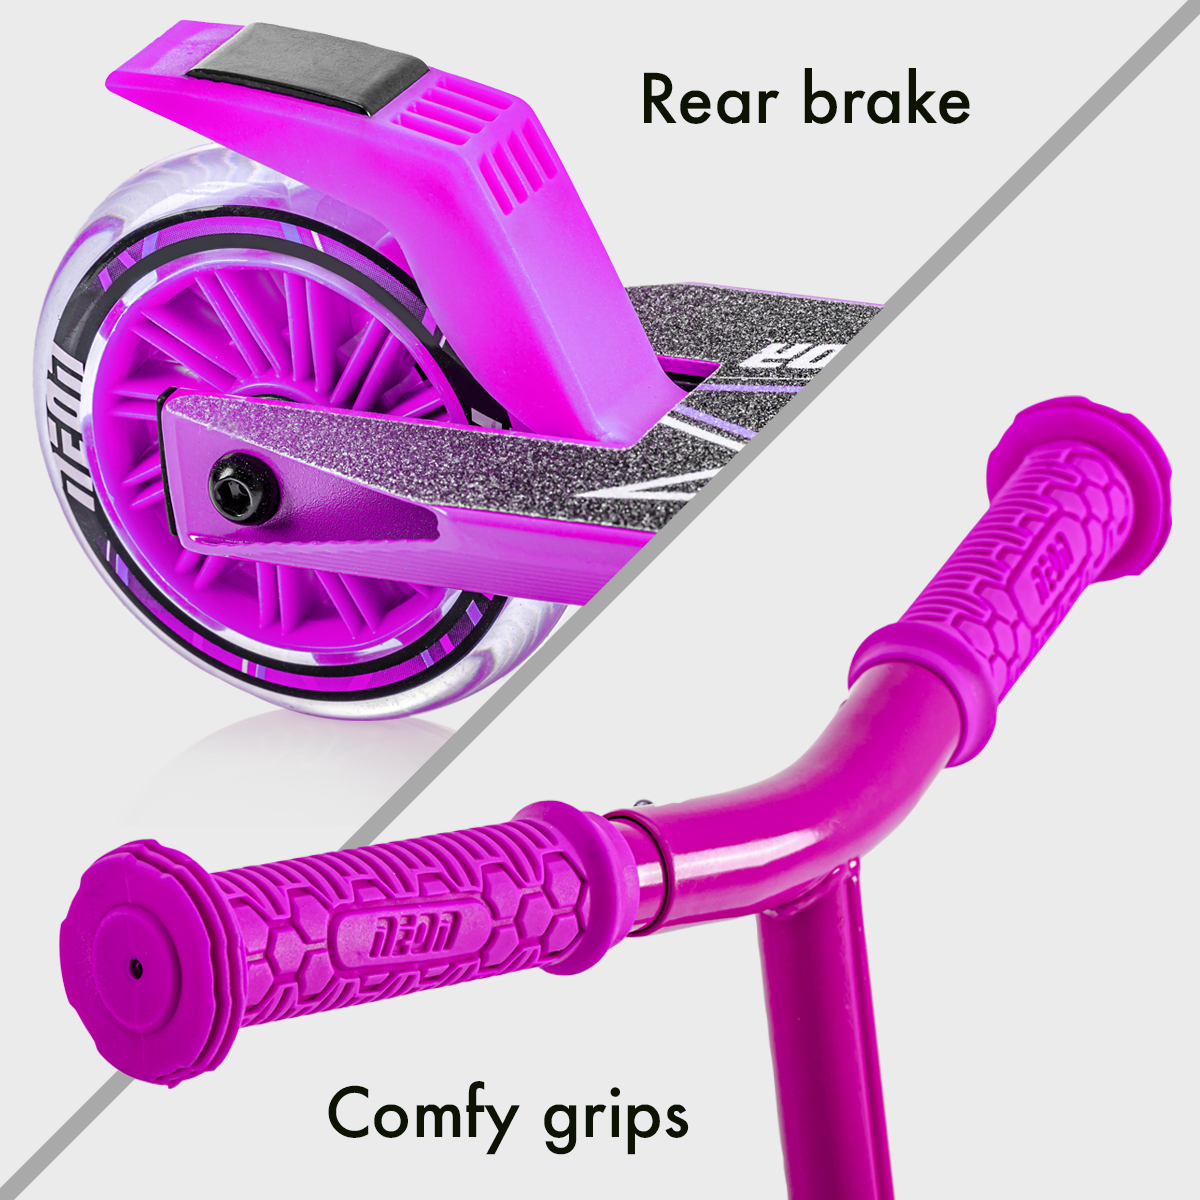 Rear brake and comfy grips for maximum control